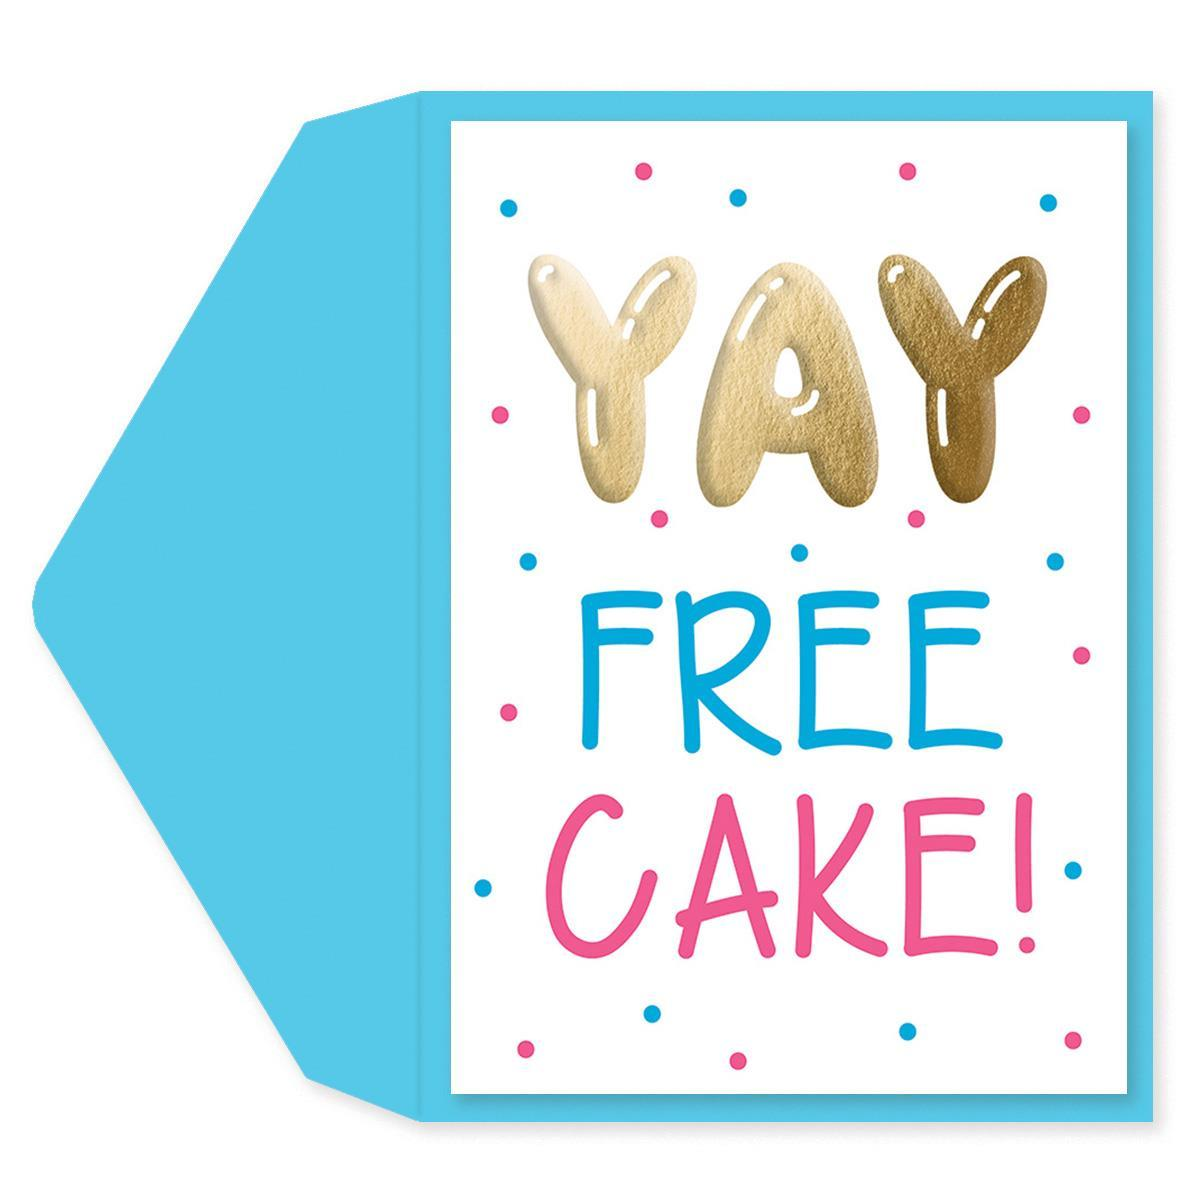 Free Cake Birthday Card